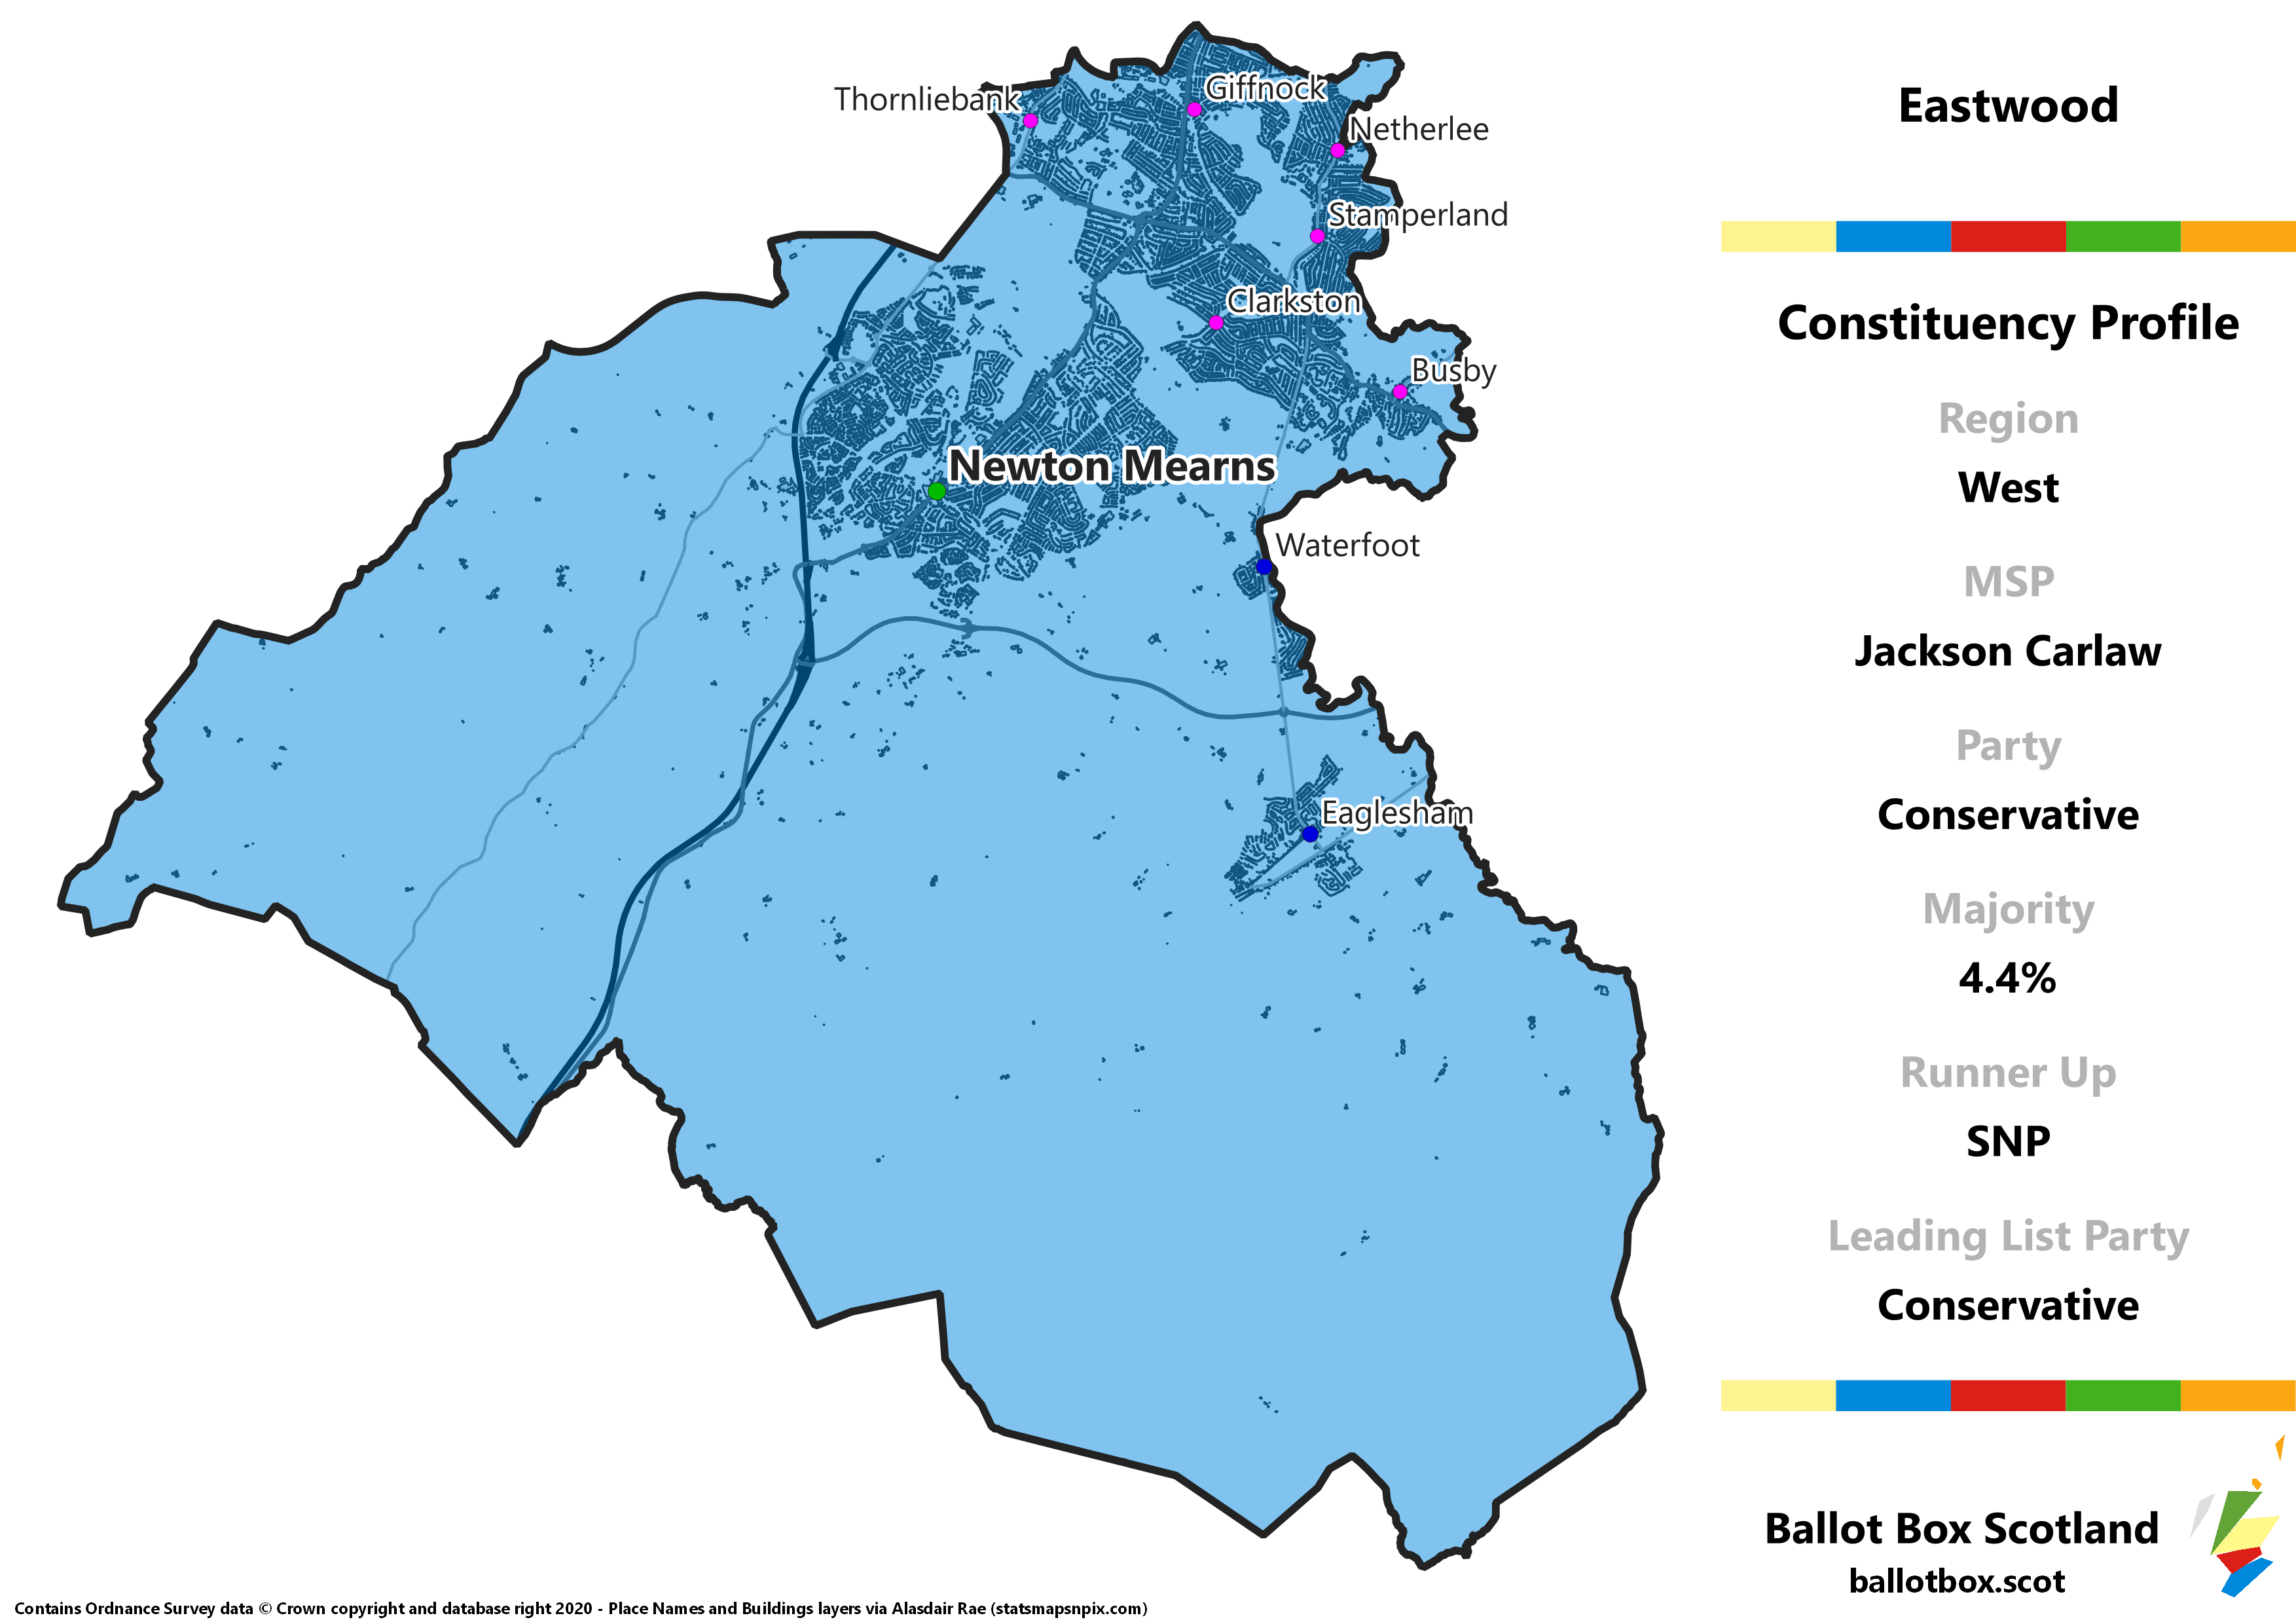 West Region – Eastwood Constituency Map